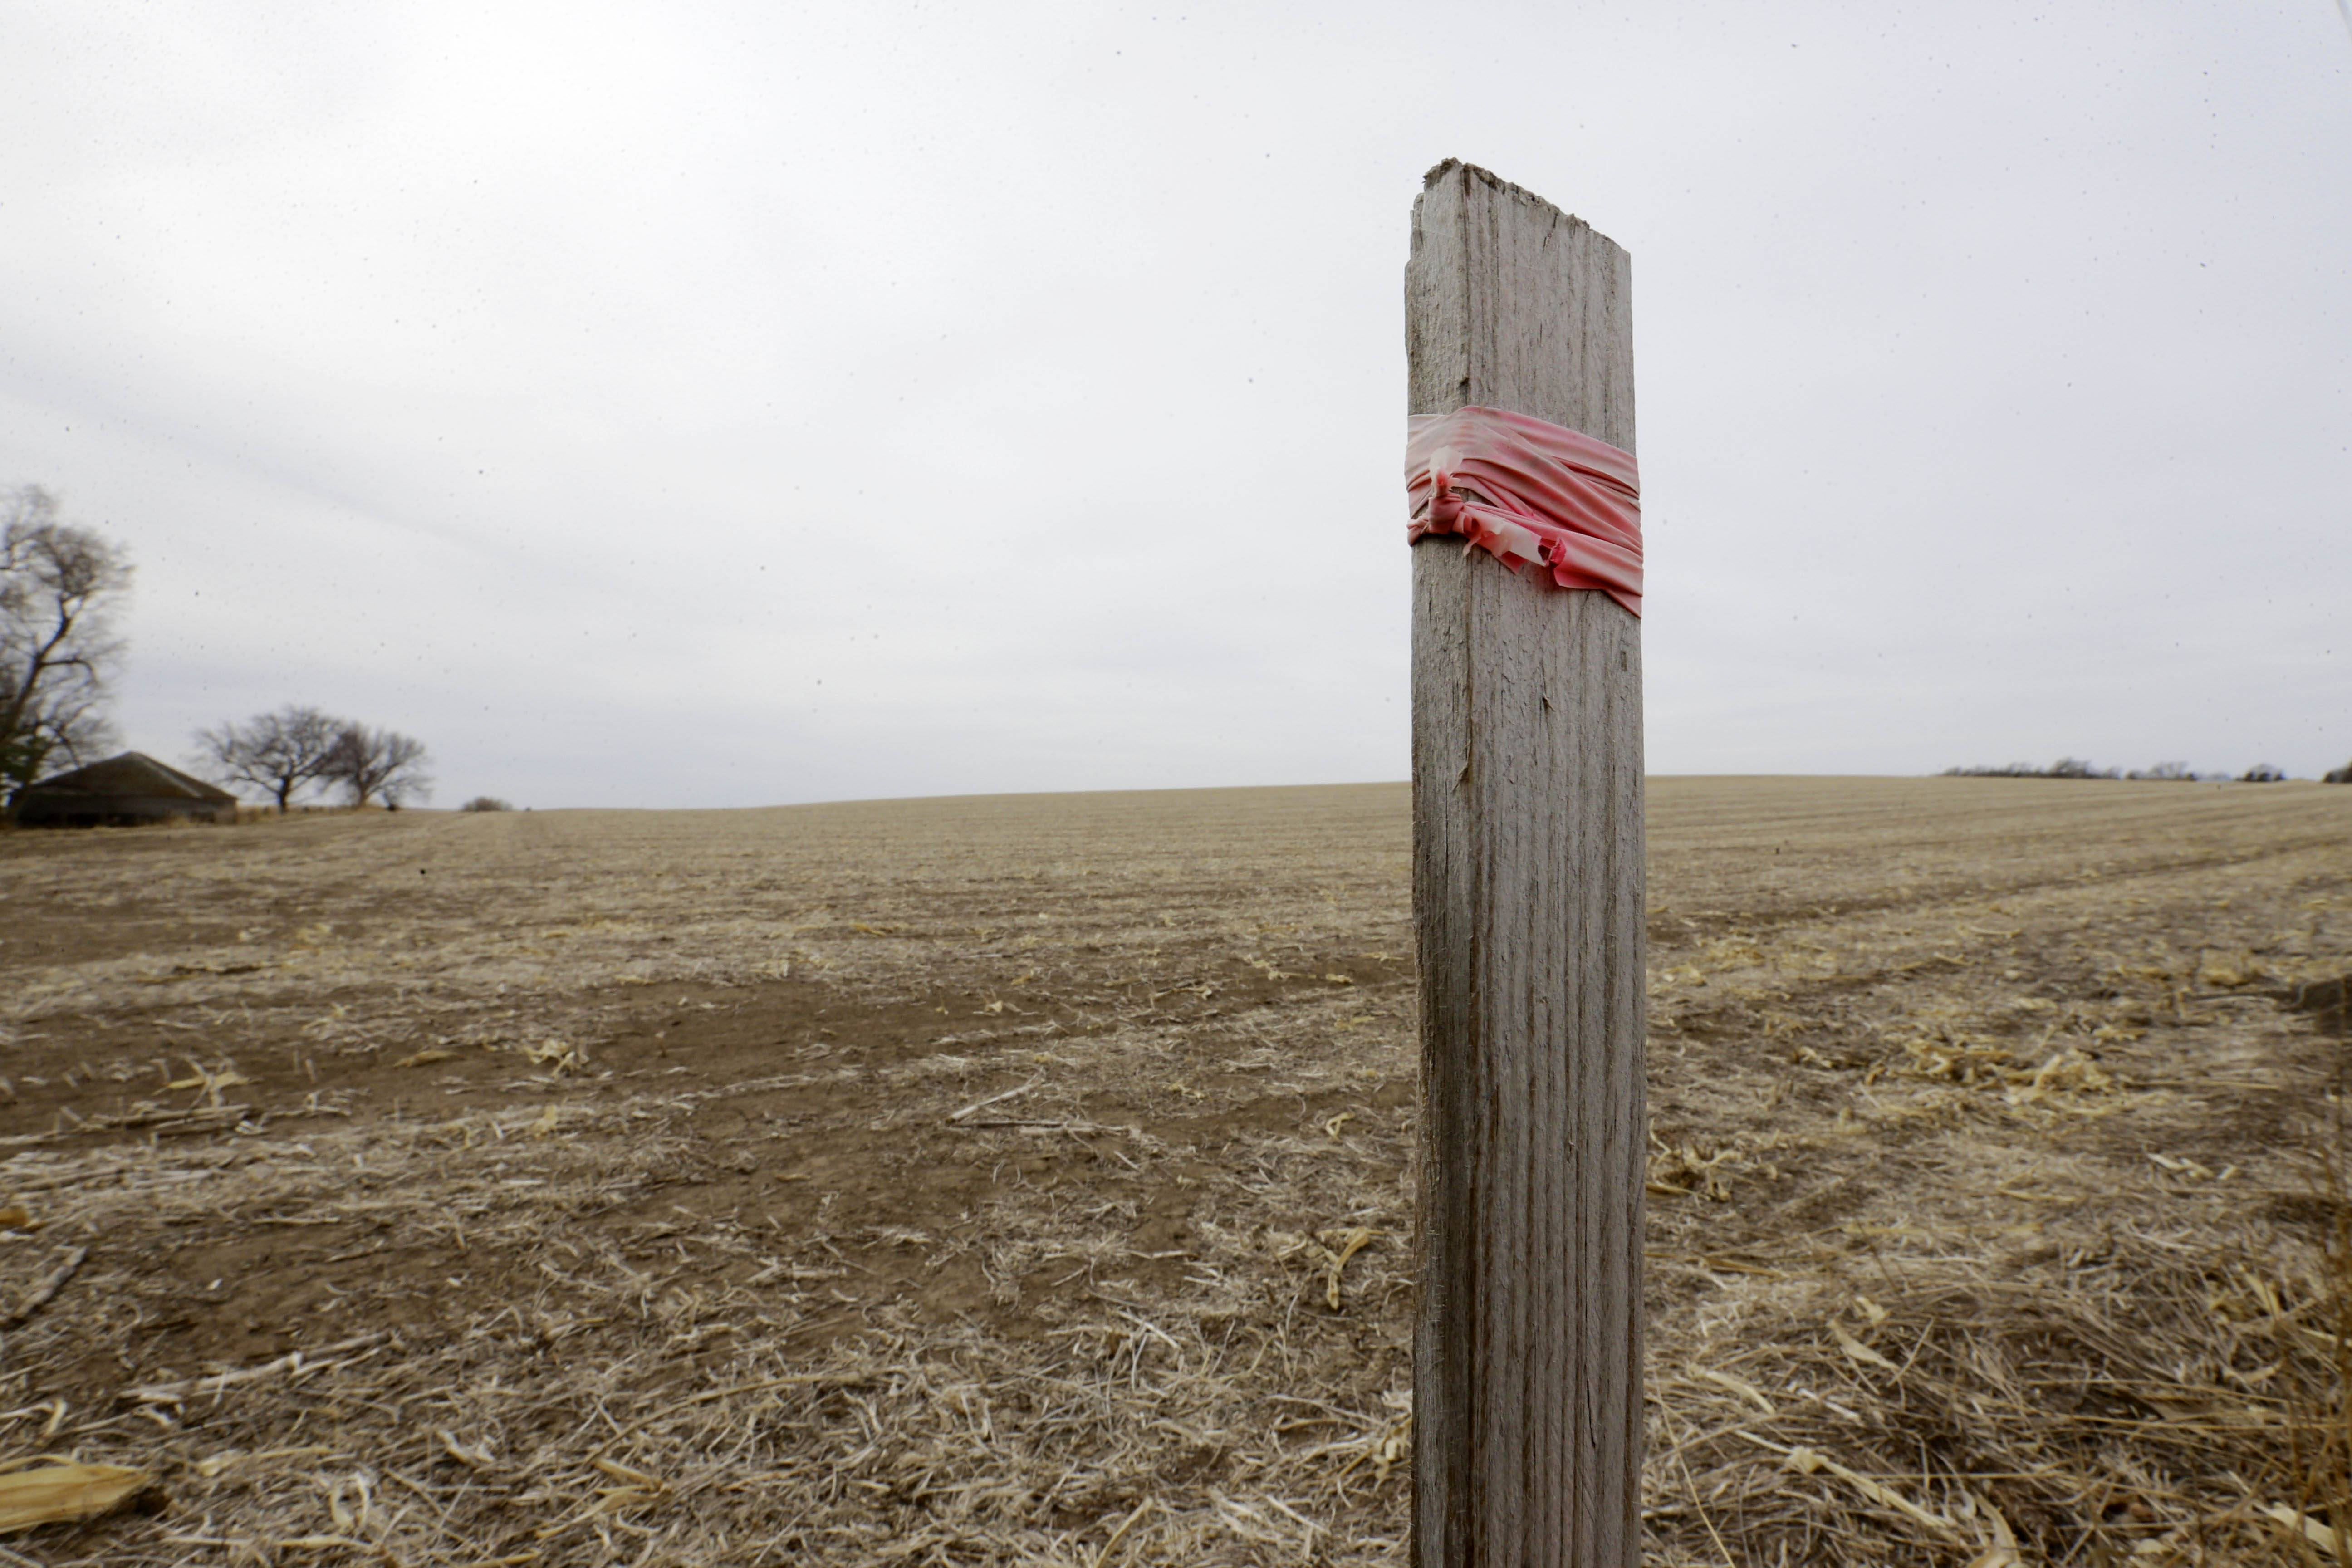 A stake in the ground wrapped with tape marks the route of the Keystone XL pipeline in Tilden, Neb. More than three-fourths of Nebraska's landowners have signed agreements to let pipeline developer TransCanada run the oil line through their property. Many have received six-figure payments for easements and temporary crop losses while the pipeline is installed.